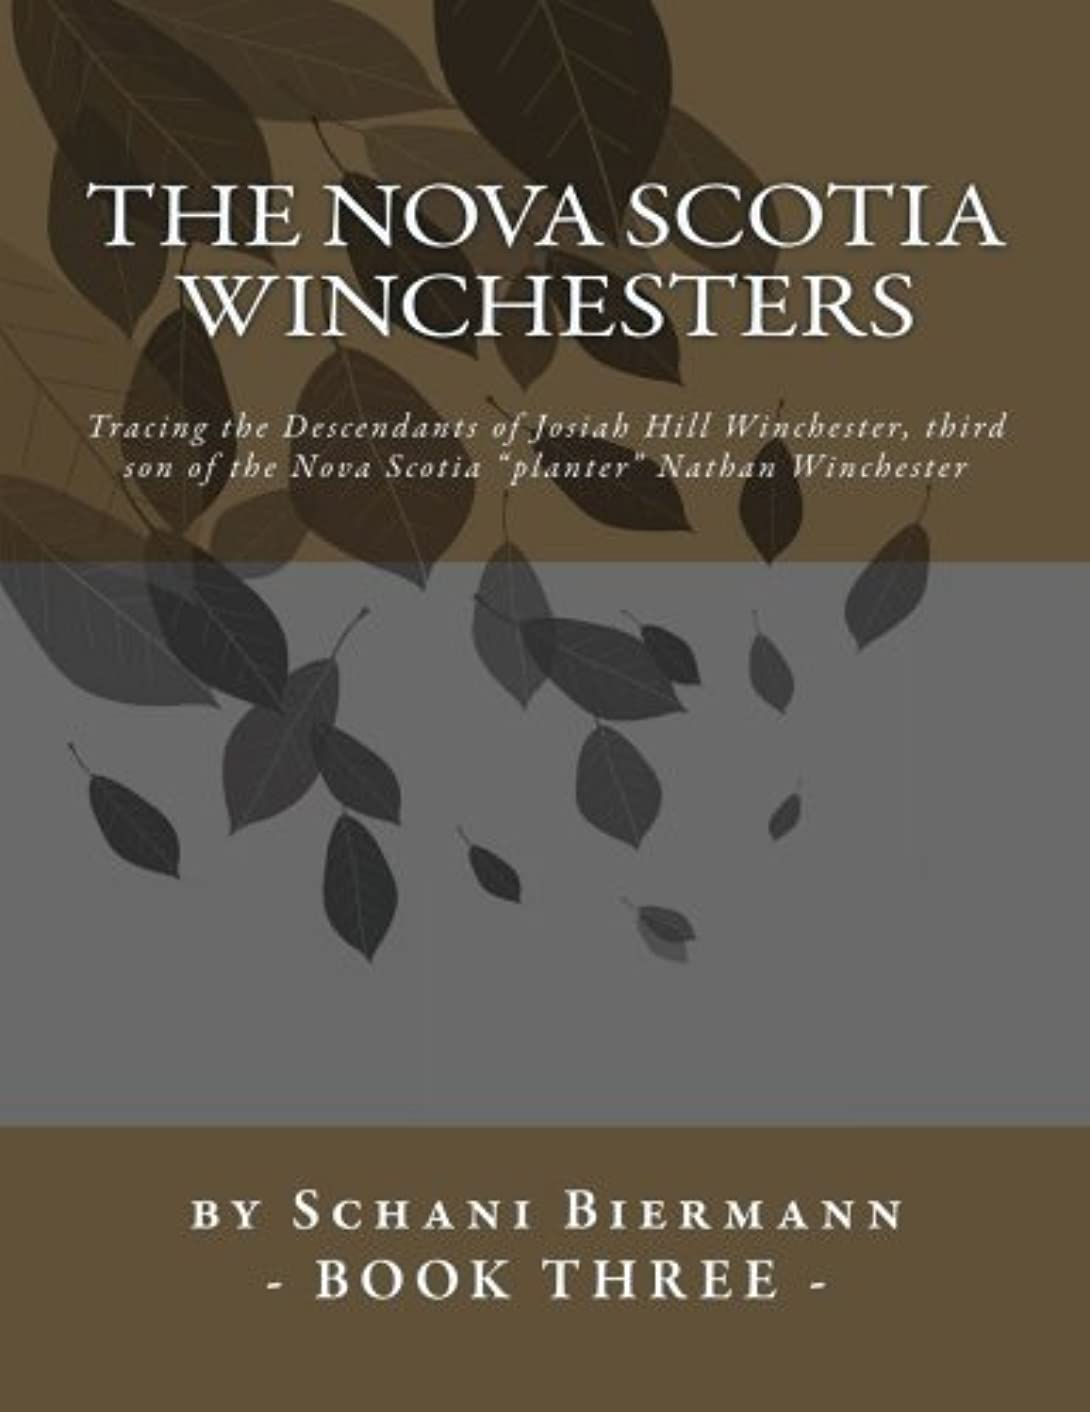 The Nova Scotia Winchesters: Tracing the Descendants of Josiah Hill Winchester, third son of the Nova Scotia